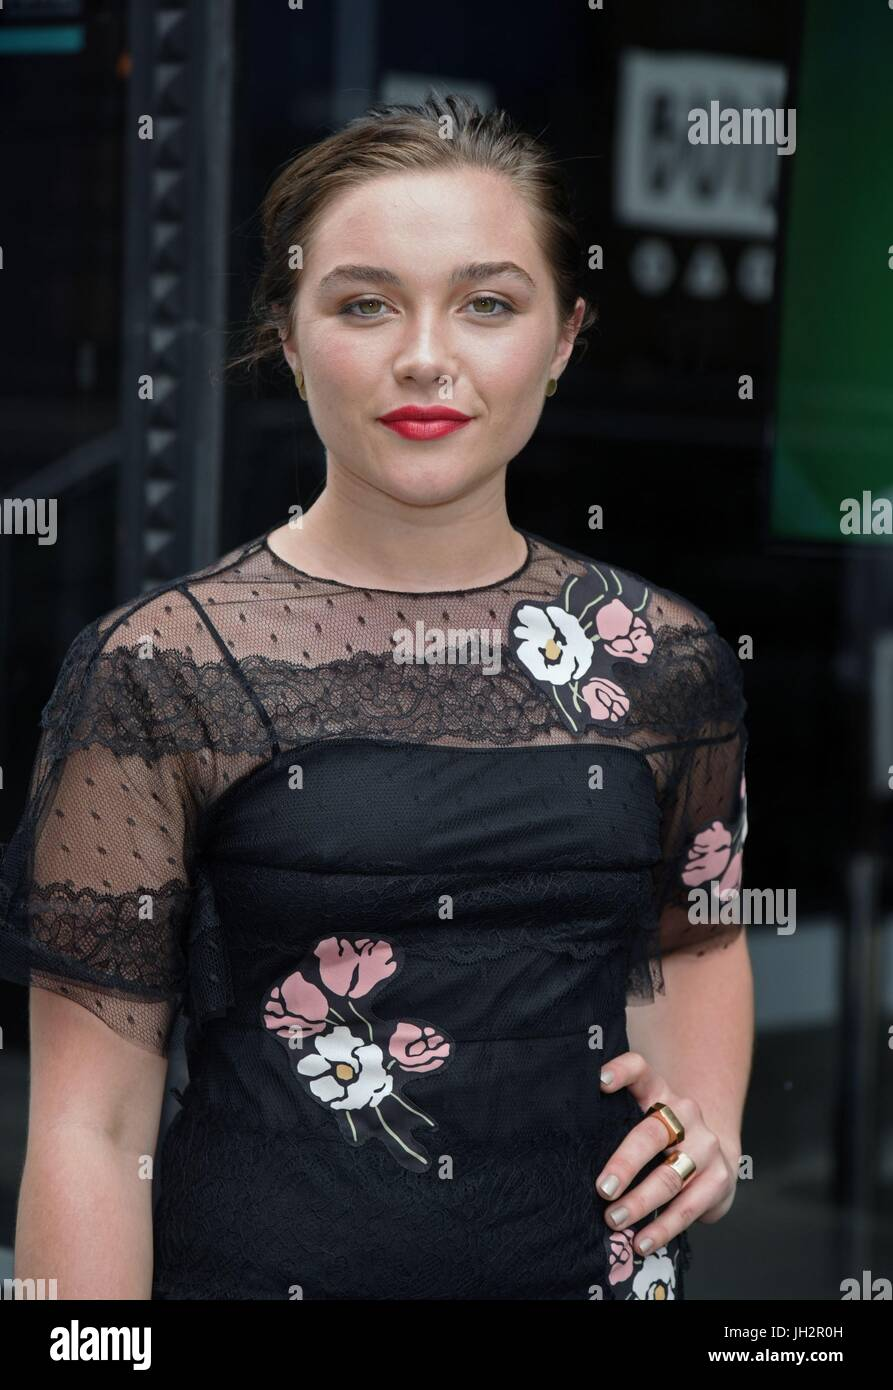 Celebrites Florence Pugh nude (76 photo), Sexy, Leaked, Boobs, cleavage 2019